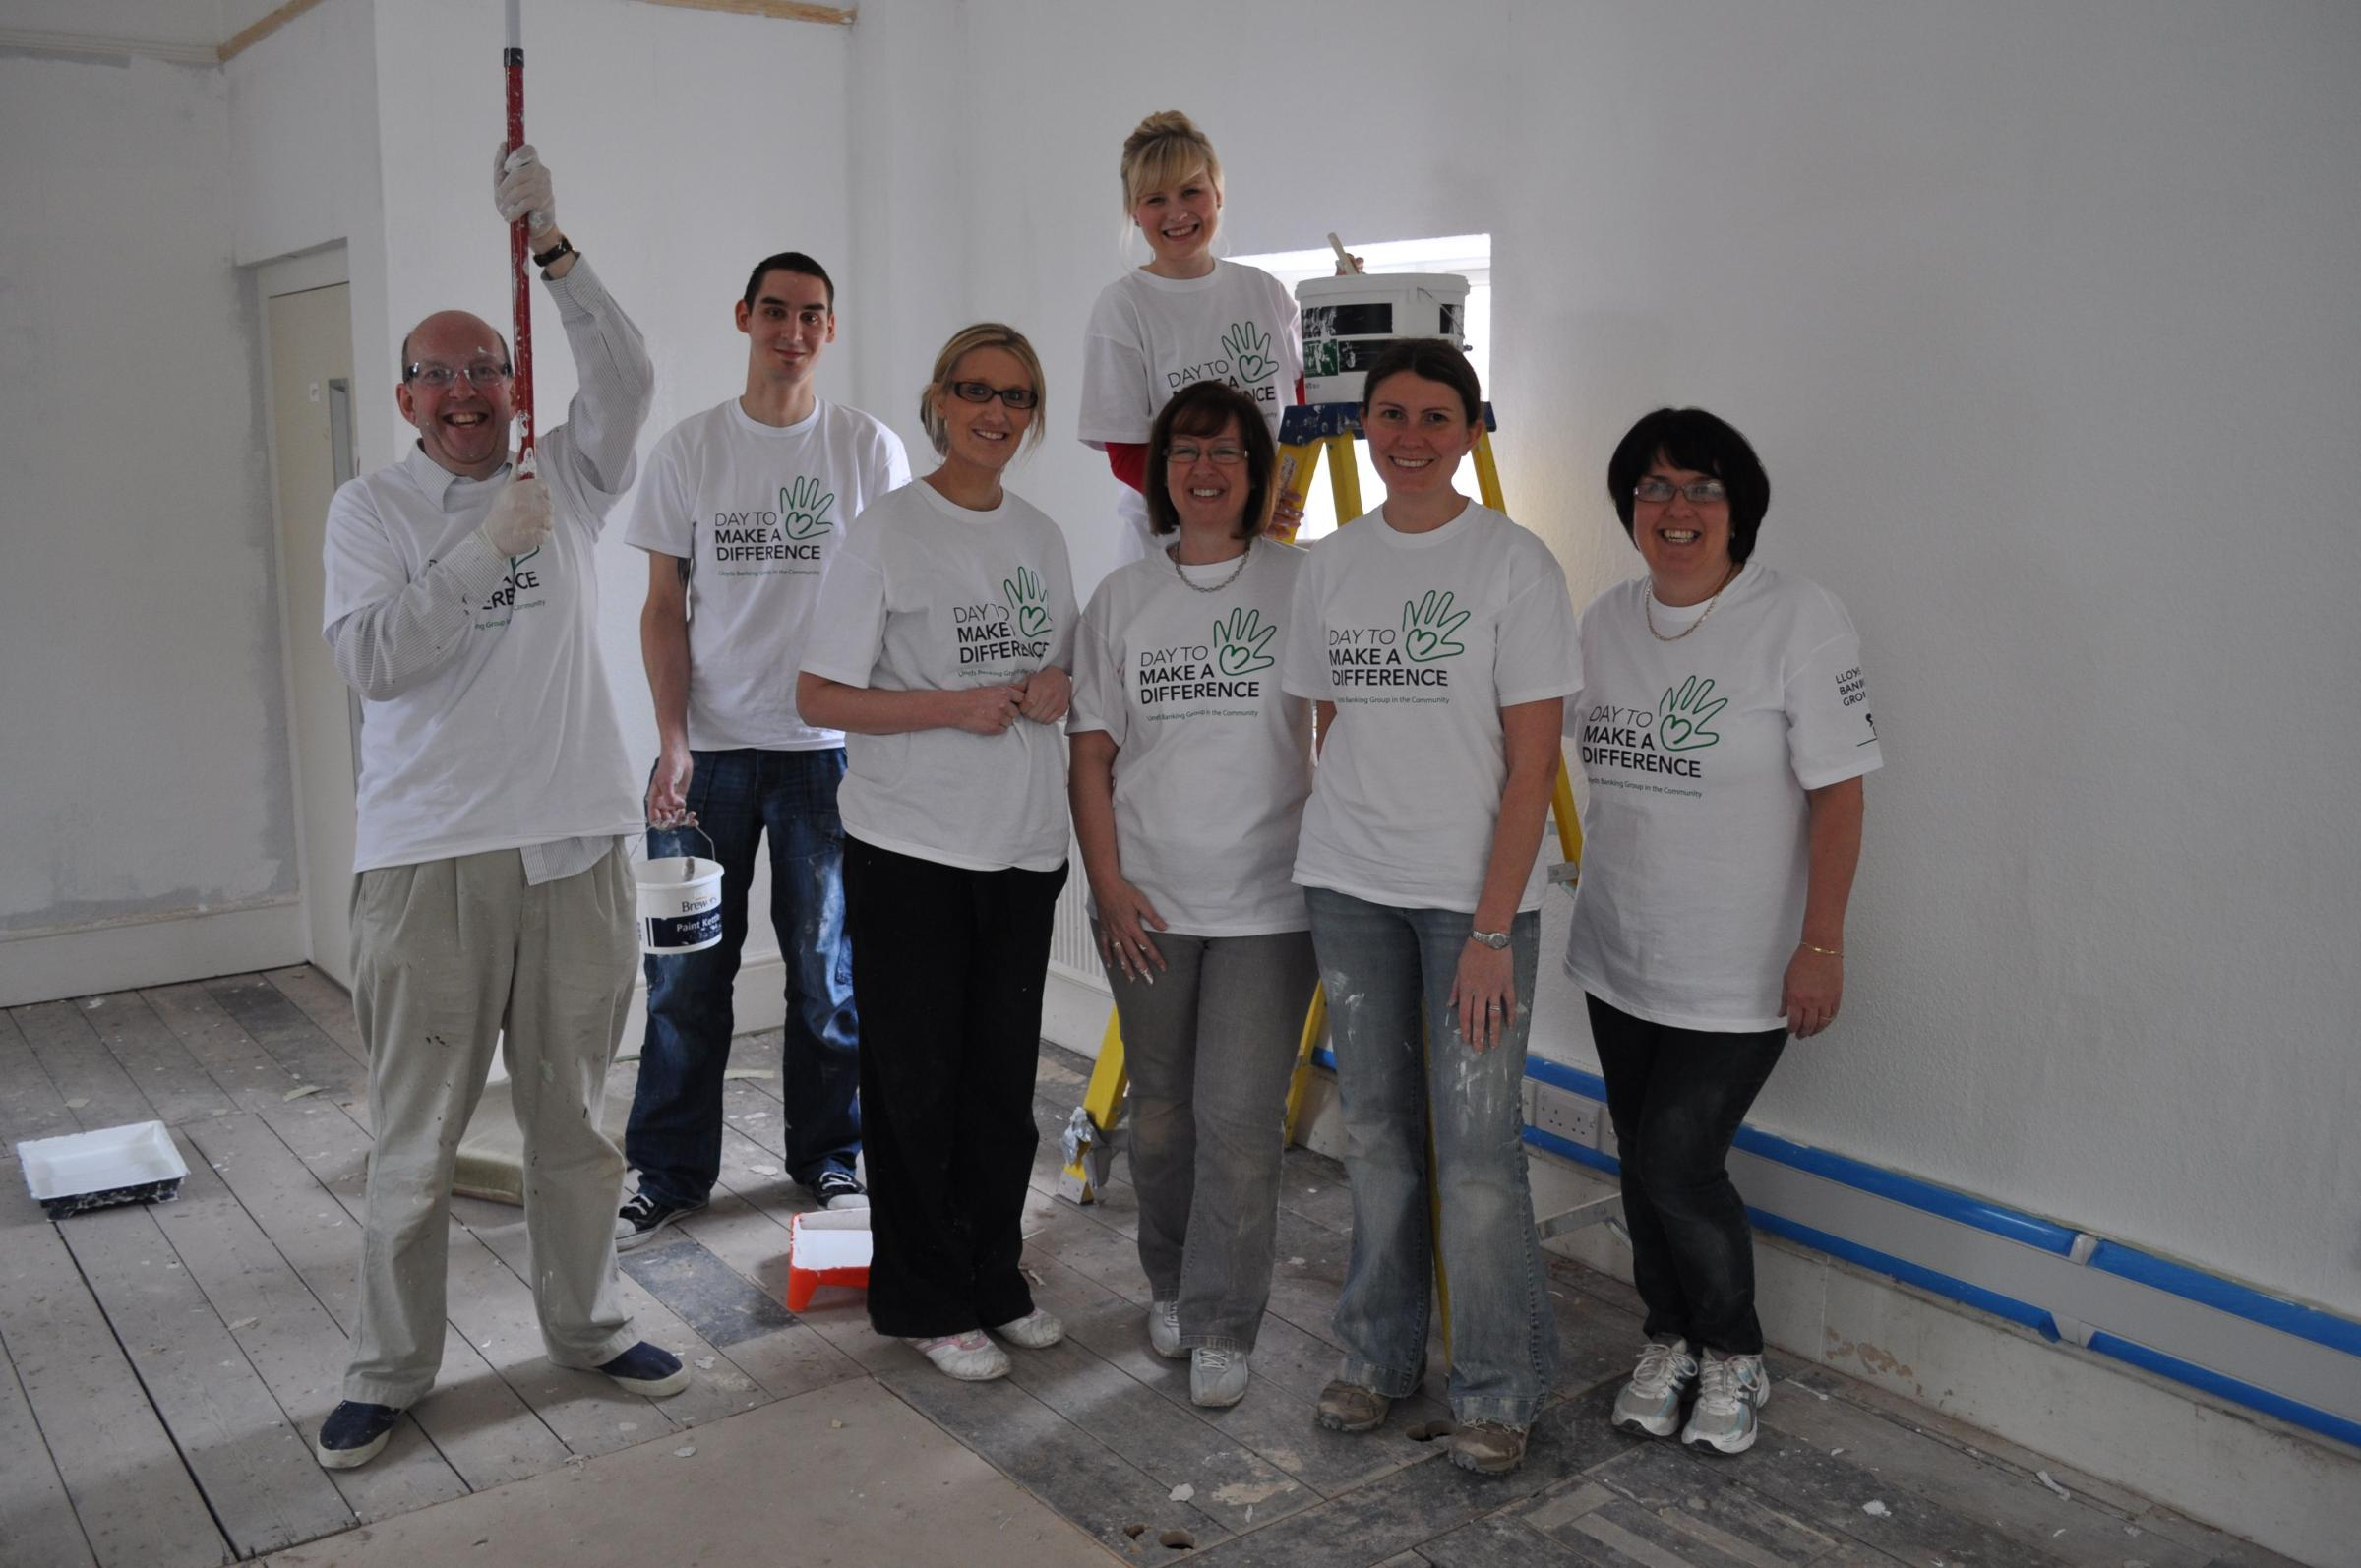 Lloyds Bank staff helping decorate the new premises.